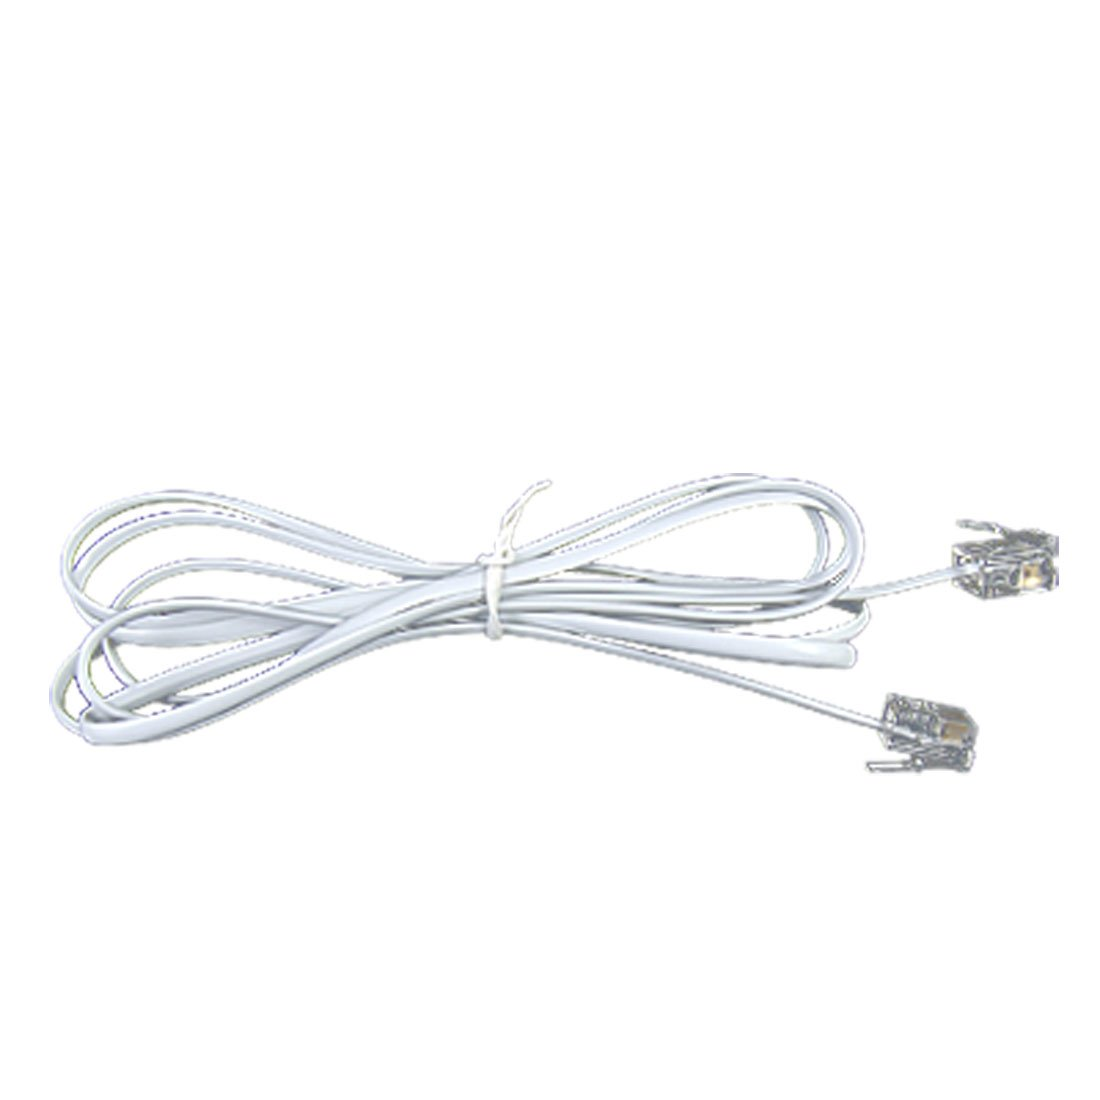 Telephone Cable Connector Rj11